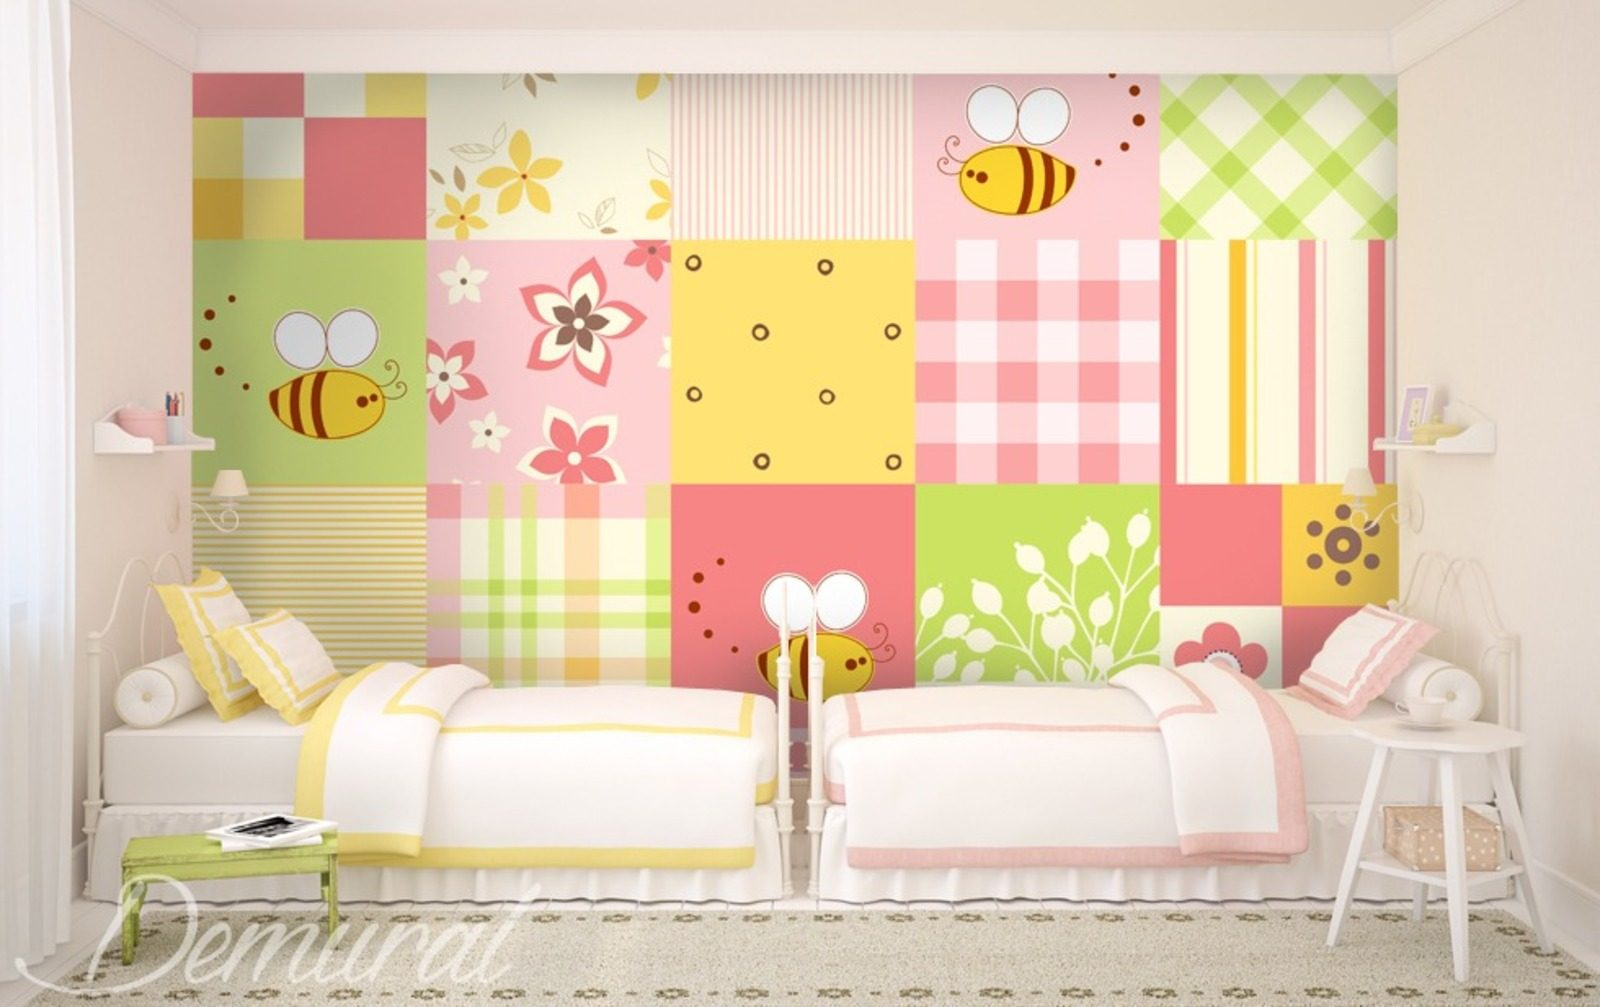 gro klein pachtwork fototapete f r kinderzimmer. Black Bedroom Furniture Sets. Home Design Ideas